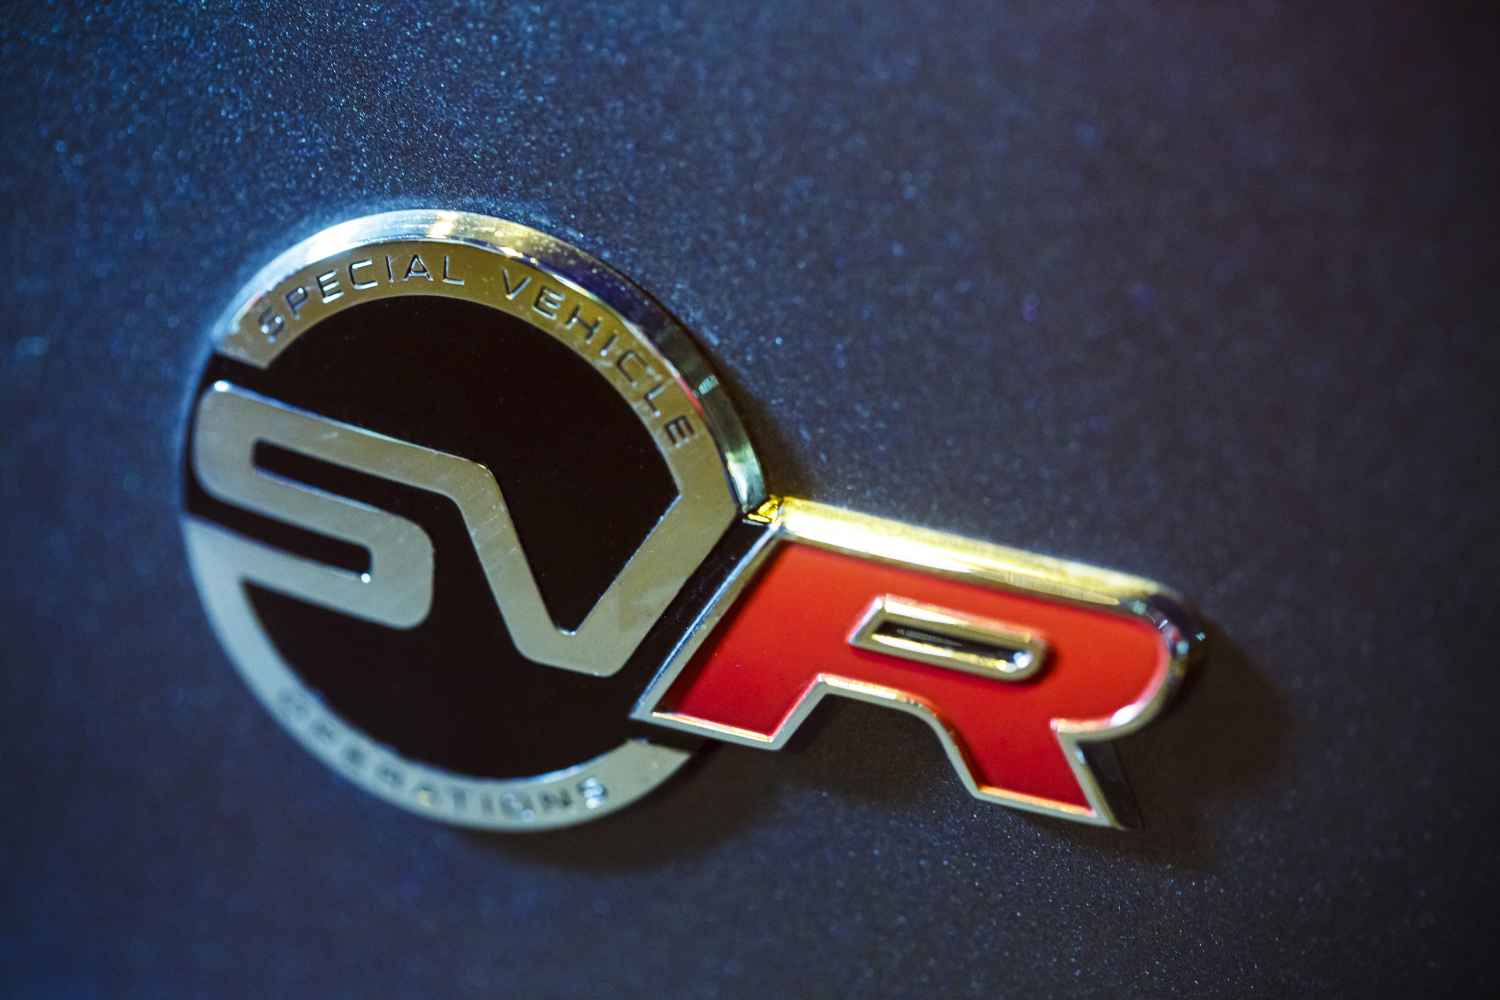 Jaguar F-TYPE SVR Badge